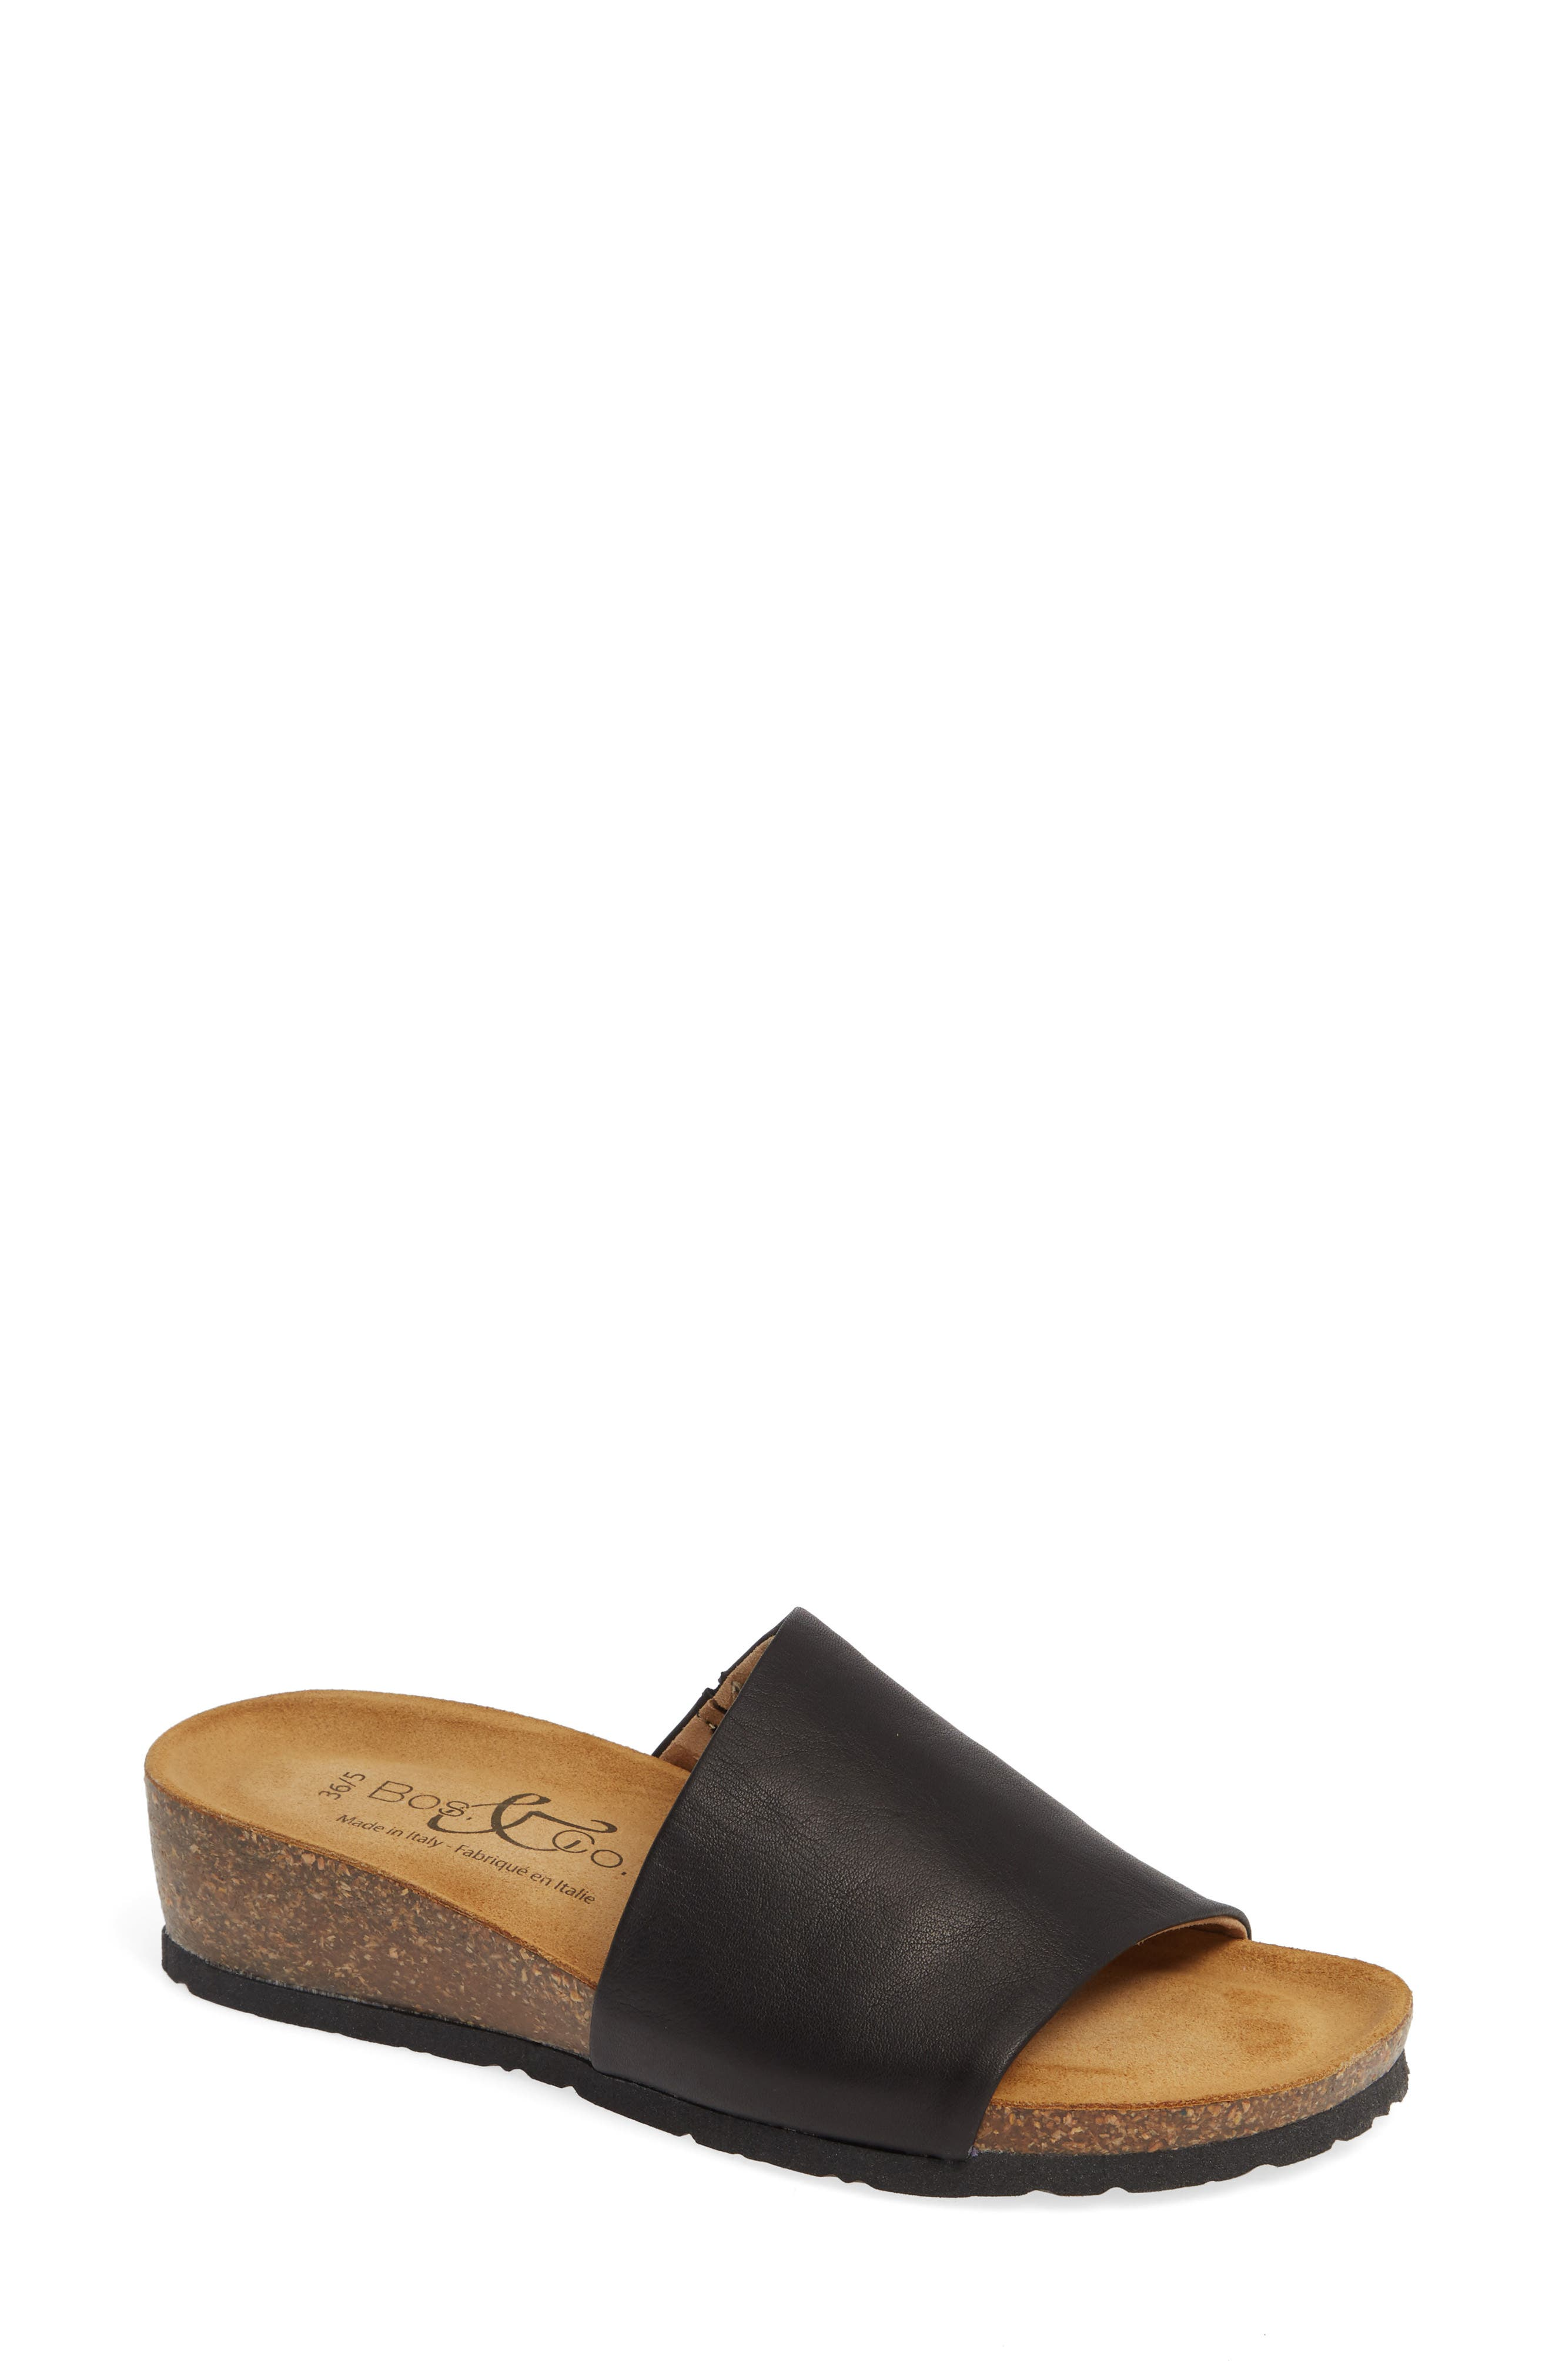 BOS. & CO., Lux Slide Sandal, Main thumbnail 1, color, BLACK NAPPA LEATHER